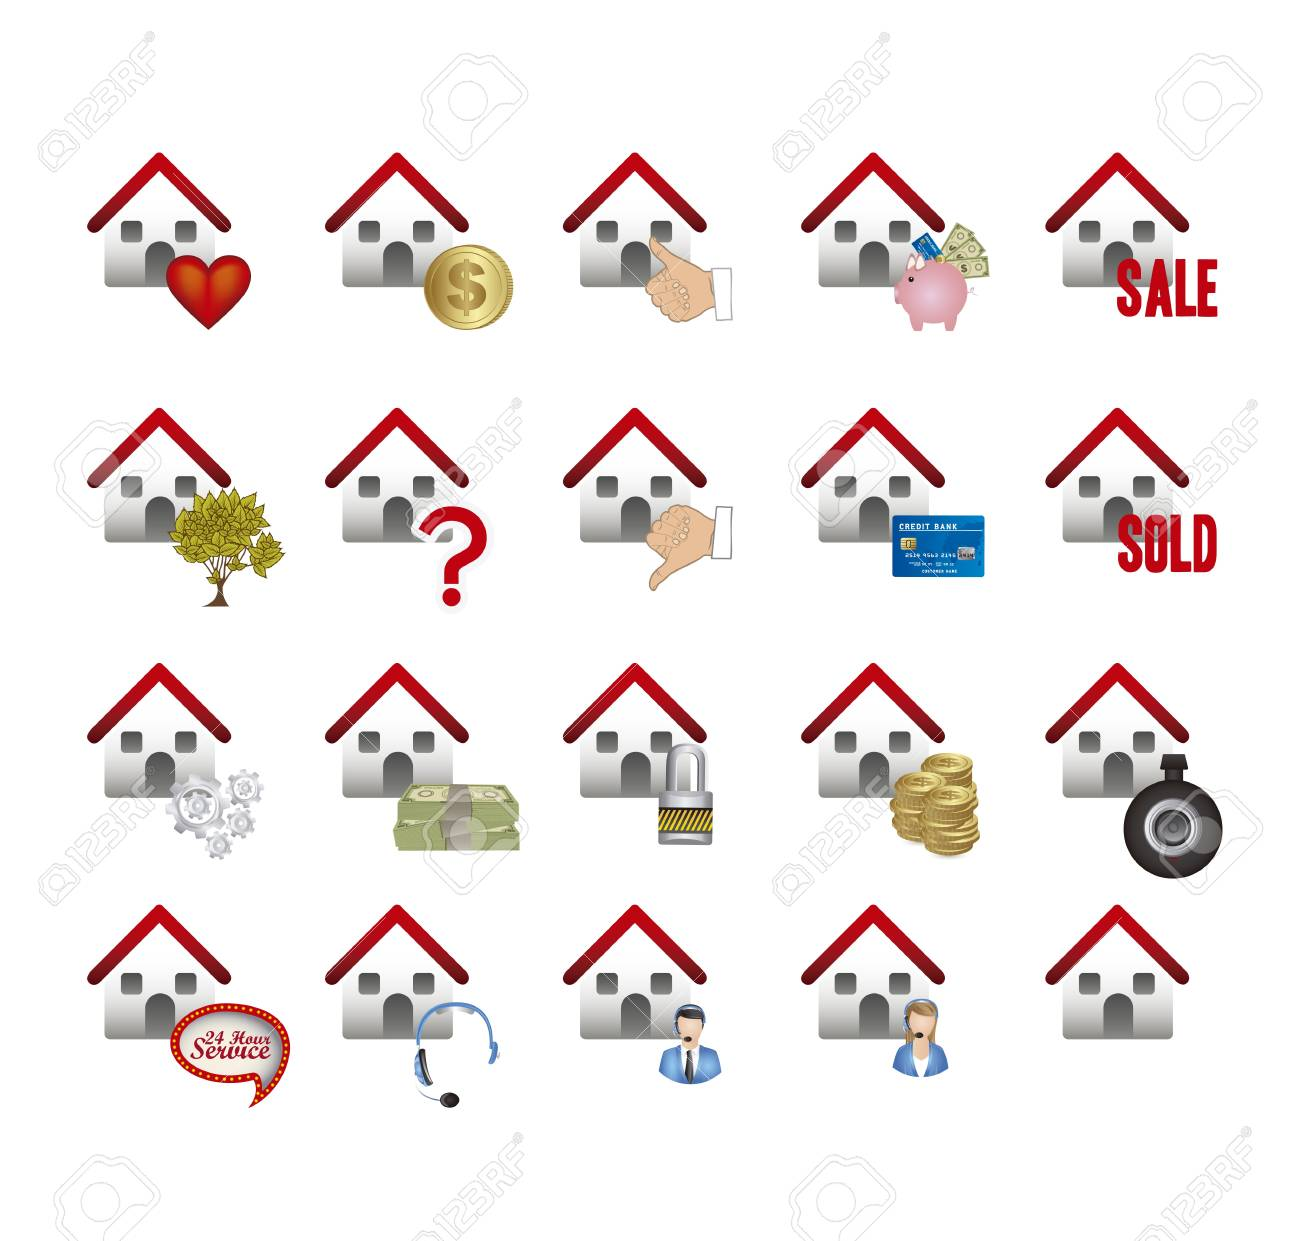 Illustration of real estate icons, conceptual icons with houses, vector illustration Stock Vector - 18954295